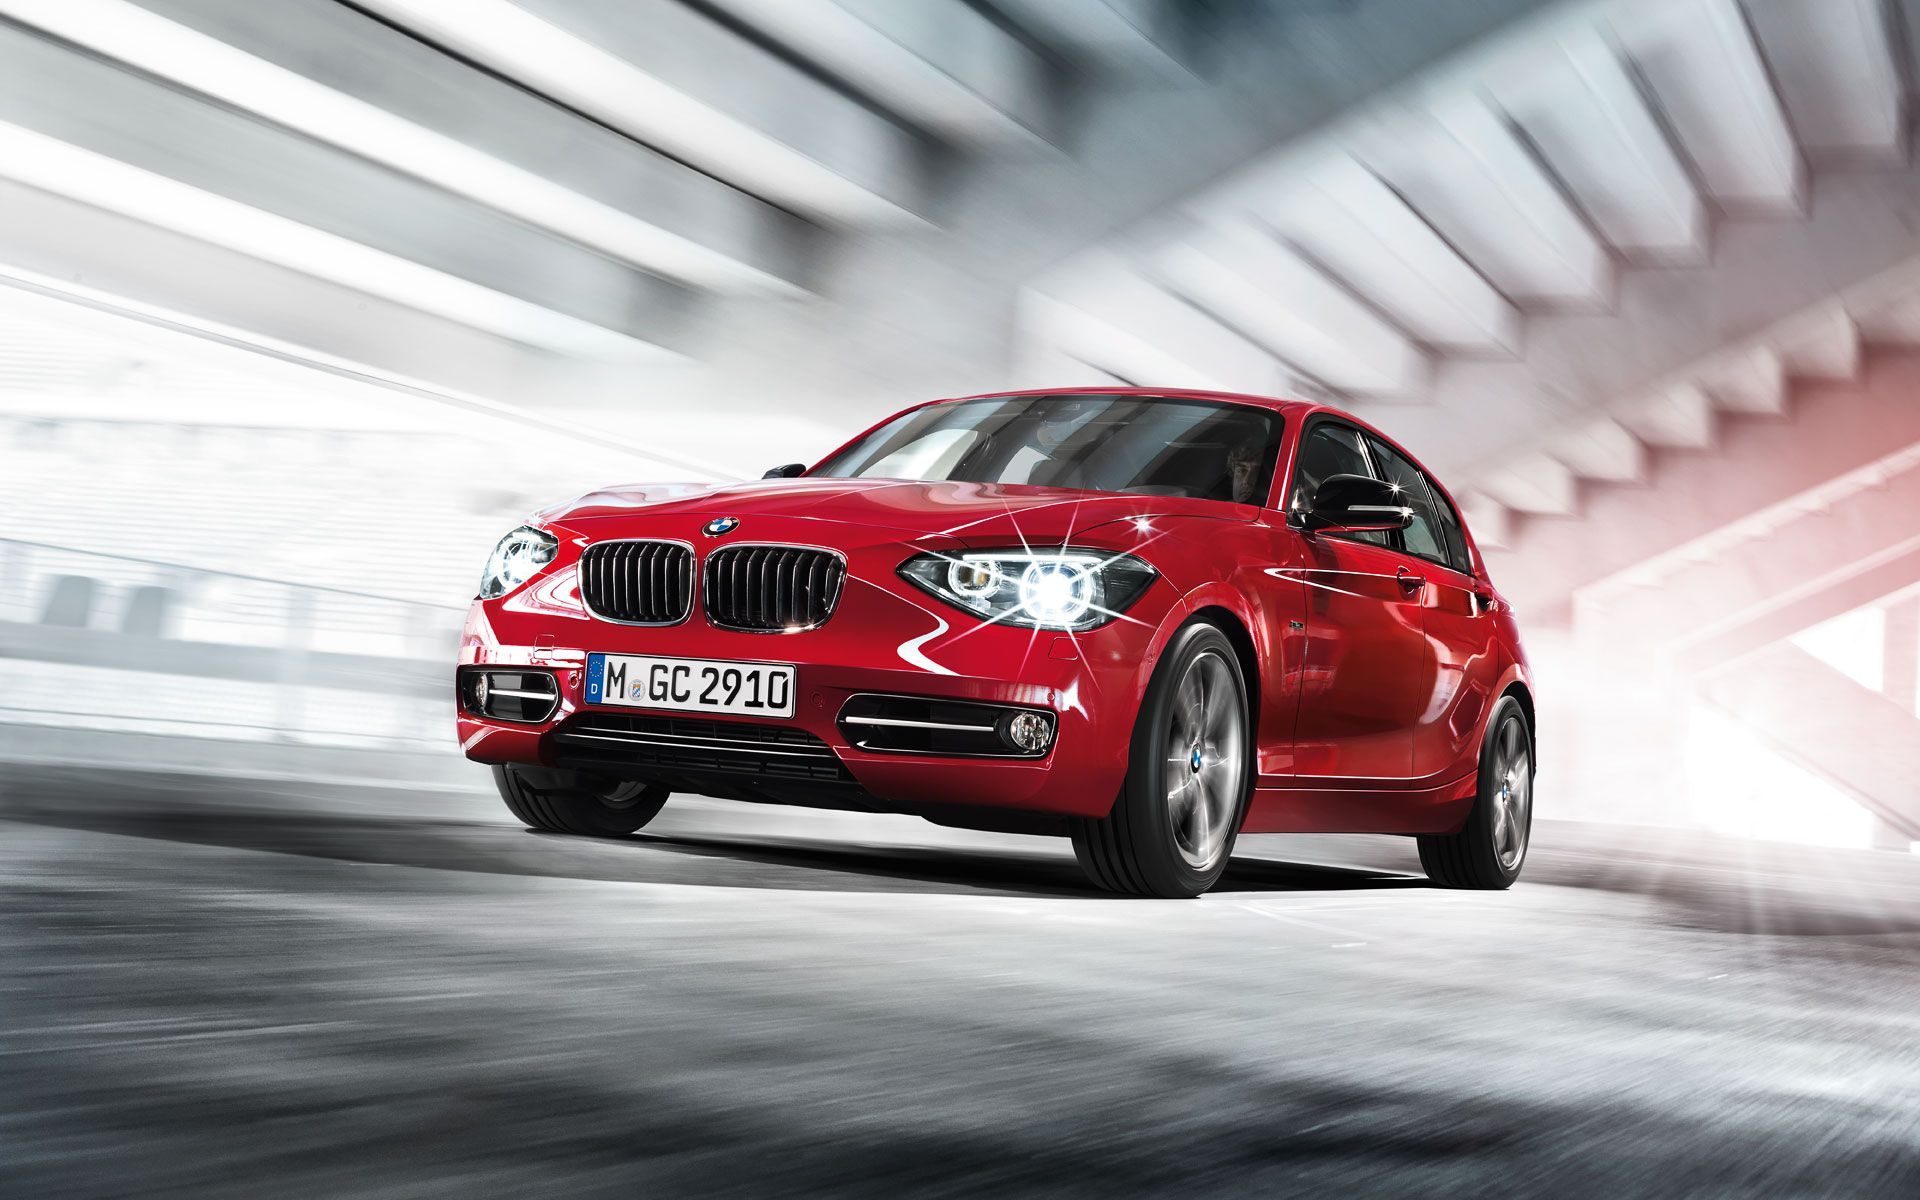 Online Premium Receipt Of Lic Pdf  Bmw  Series Hatchback Red Car Wallpaper Front Side View  Invoicing Software Freeware Pdf with Asap Invoice Word  Bmw  Series Hatchback Red Car Wallpaper Front Side View How To Write Up A Invoice Word